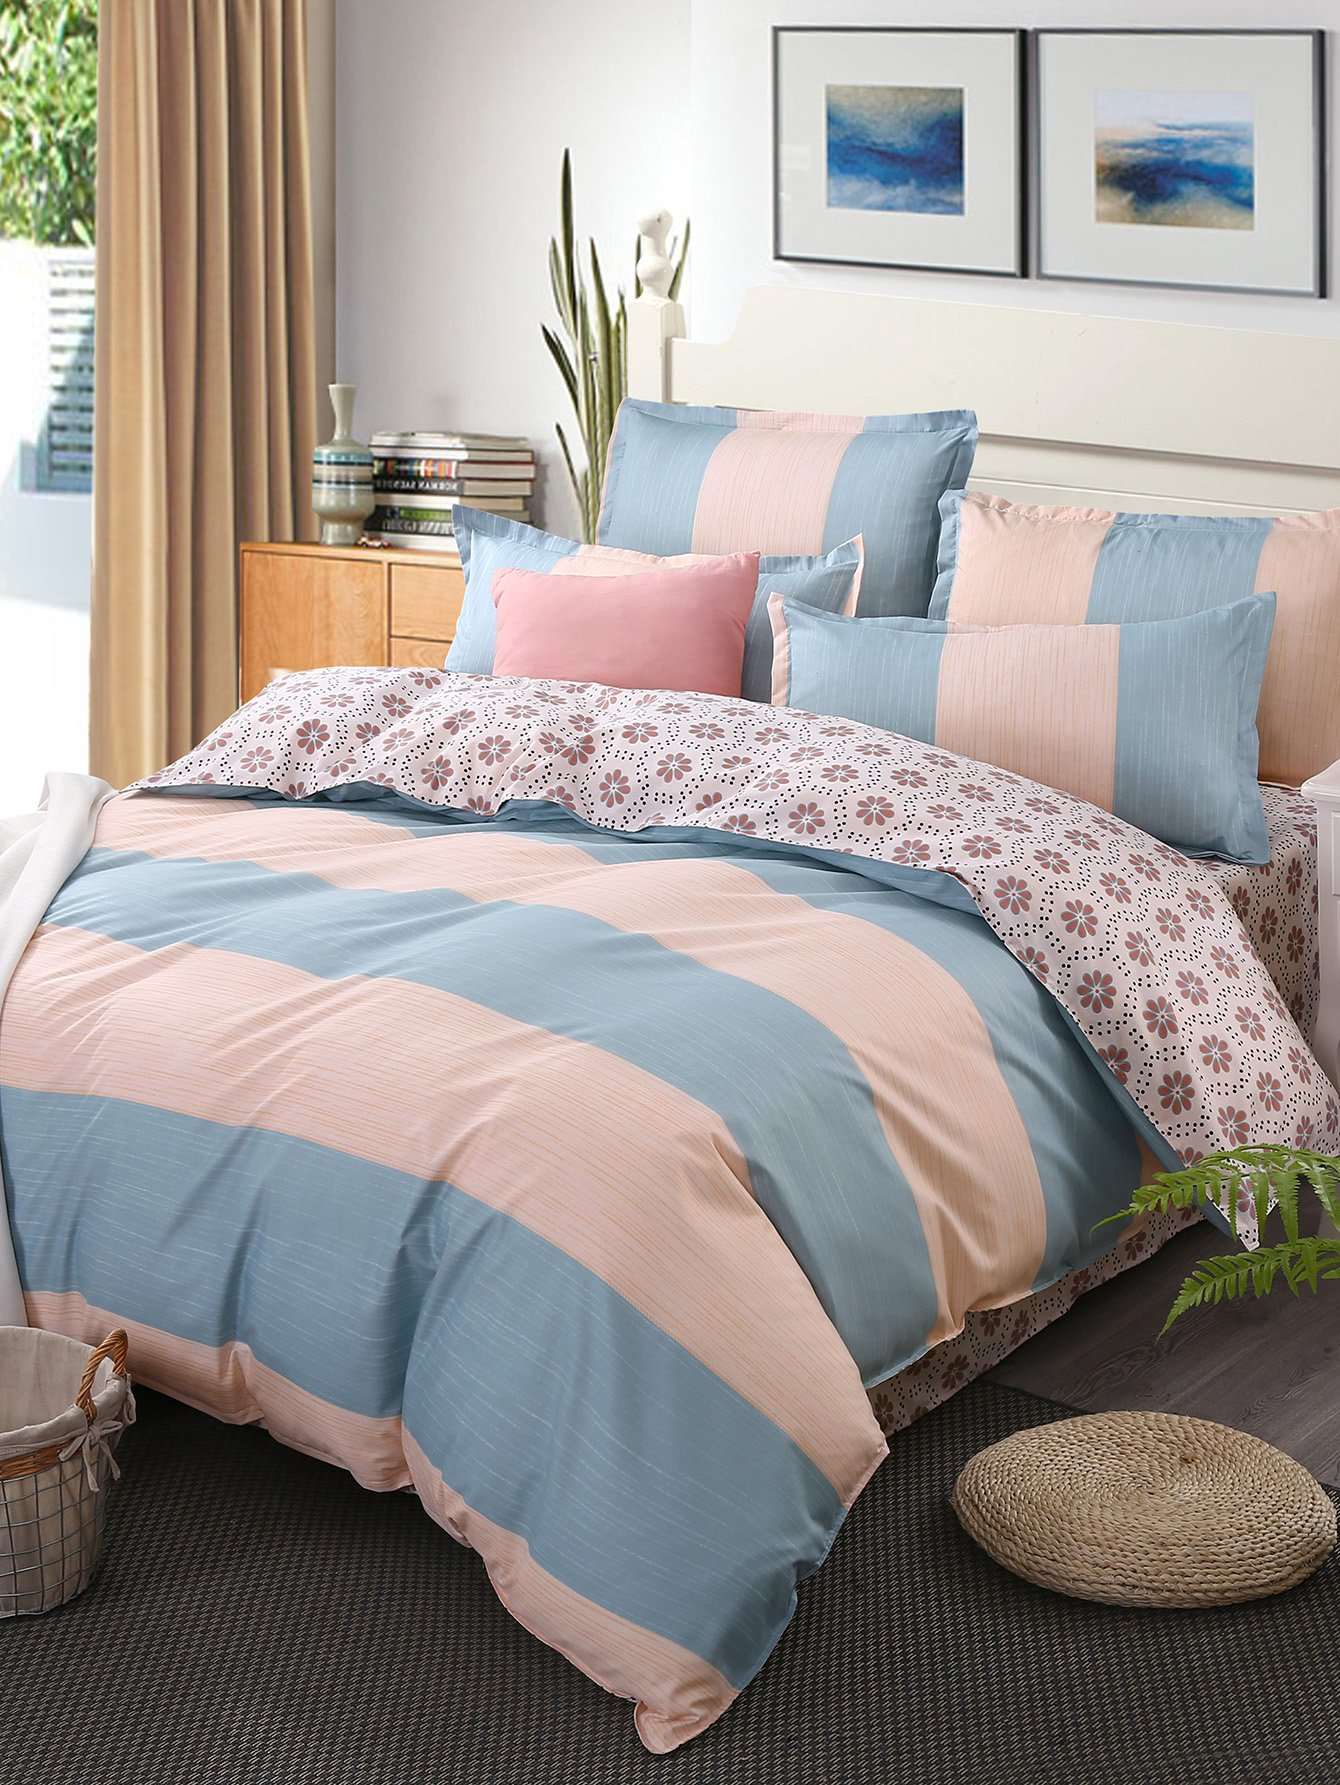 Calico & Striped Print Bedding Set vertical striped bedding set